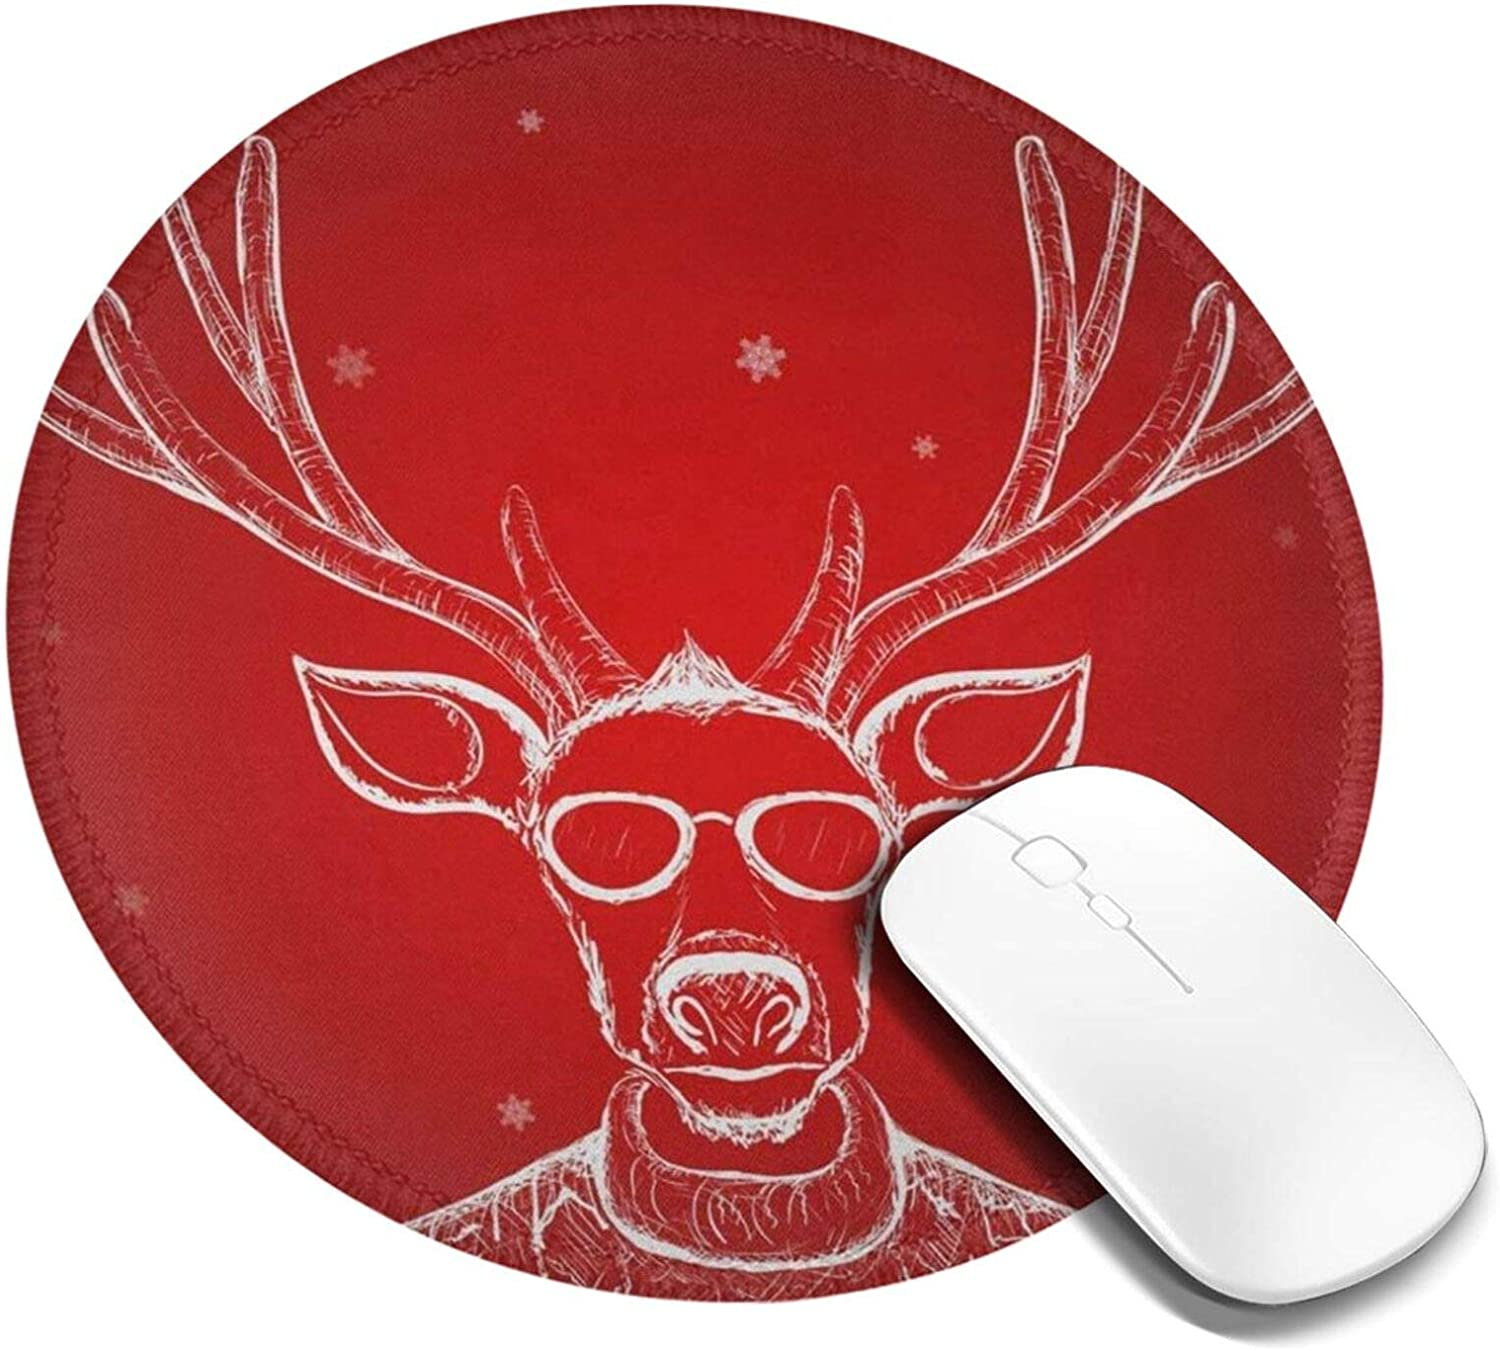 Mousepad Round Hand Drawn Deer Computer Laptop Mouse Pad Non Slip Mini Cute Small Circle Gaming Mouse Mat with Black Rubber Base for Women Kids Girls Boys Men 7.9in